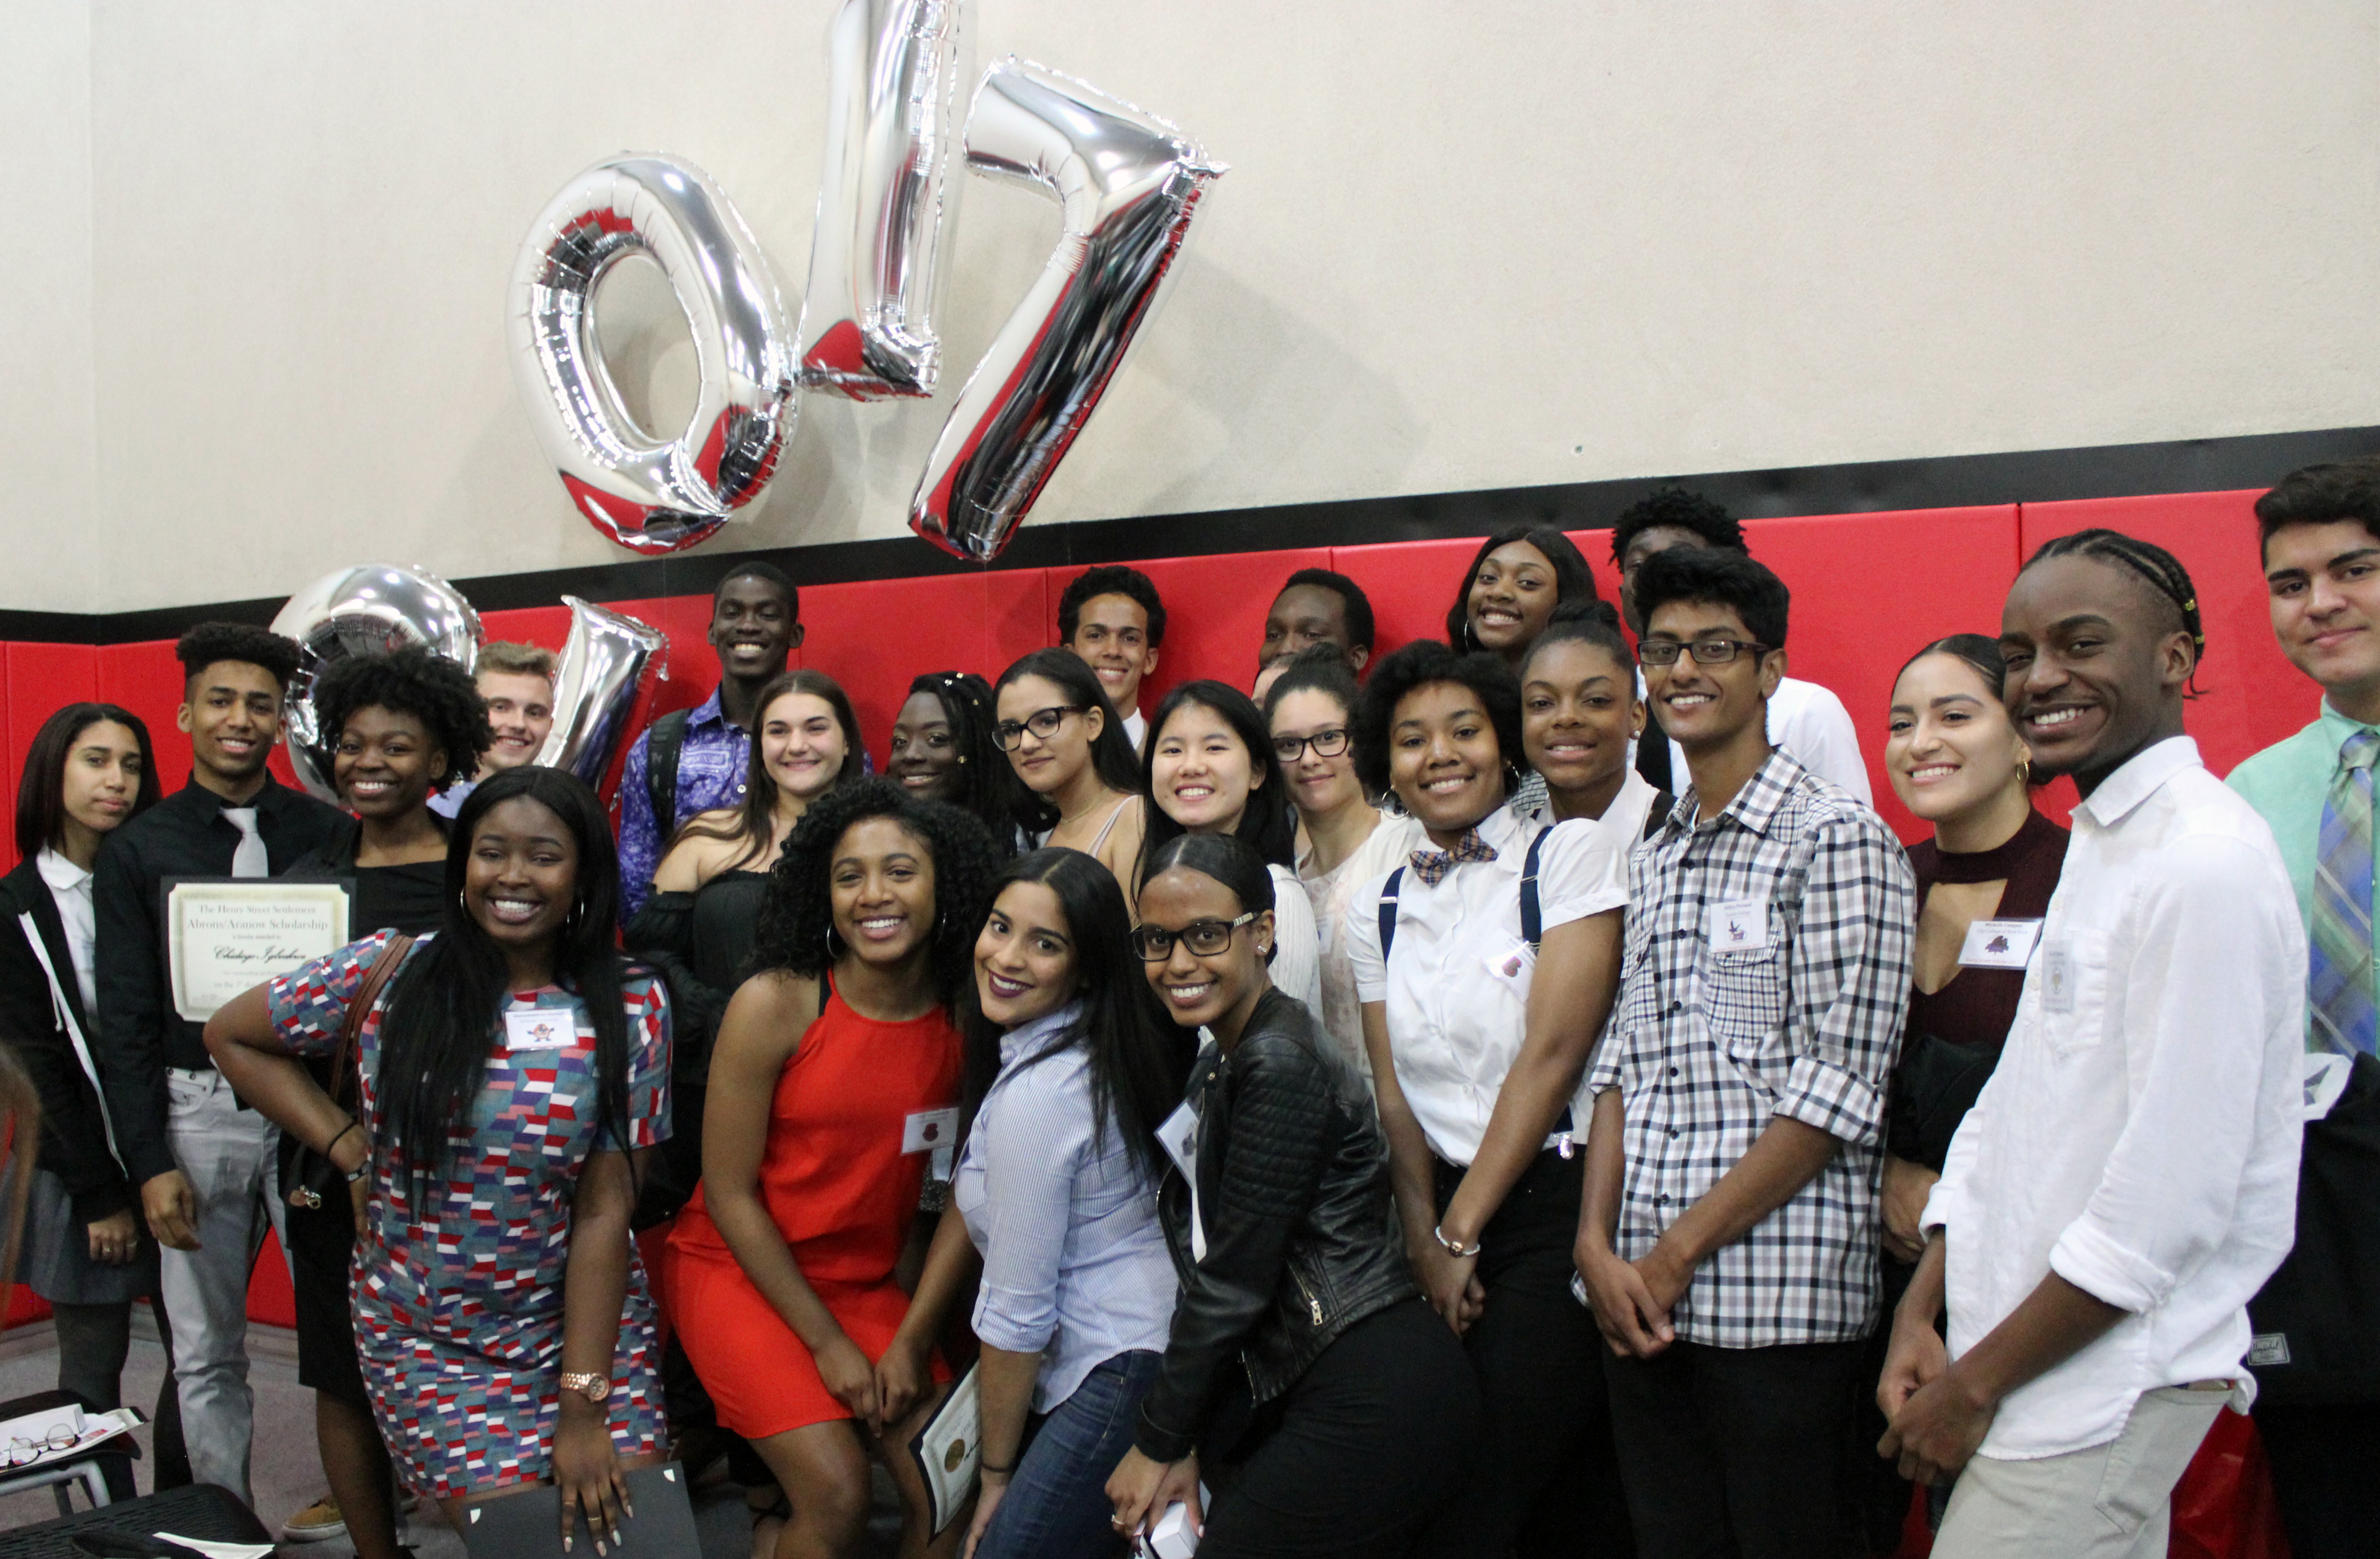 Expanded Horizons youth smile at camera with '2017' balloons